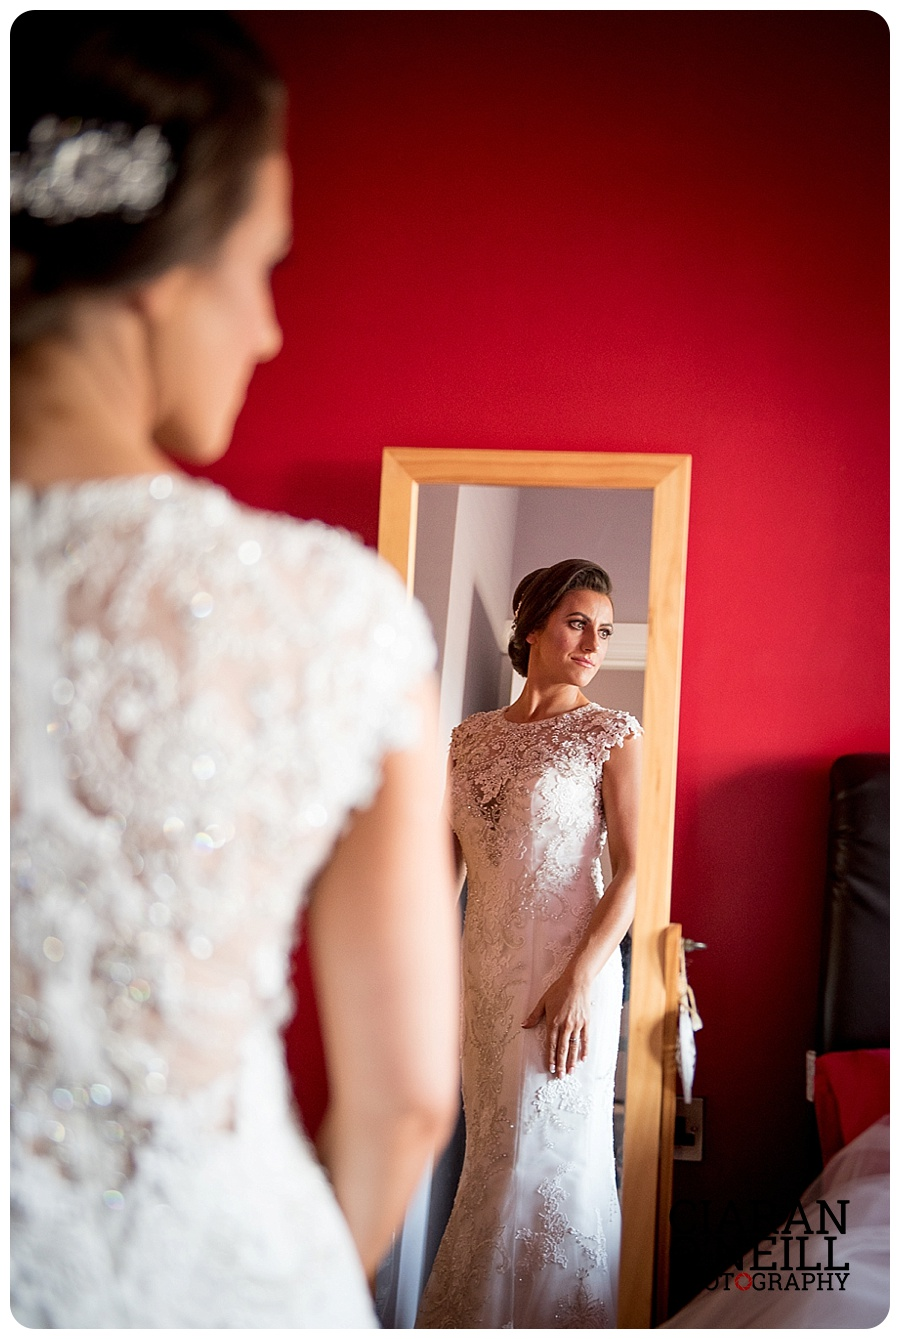 Clodagh & Declan's wedding at the Ballymascanlon Hotel by Ciaran O'Neill Photography